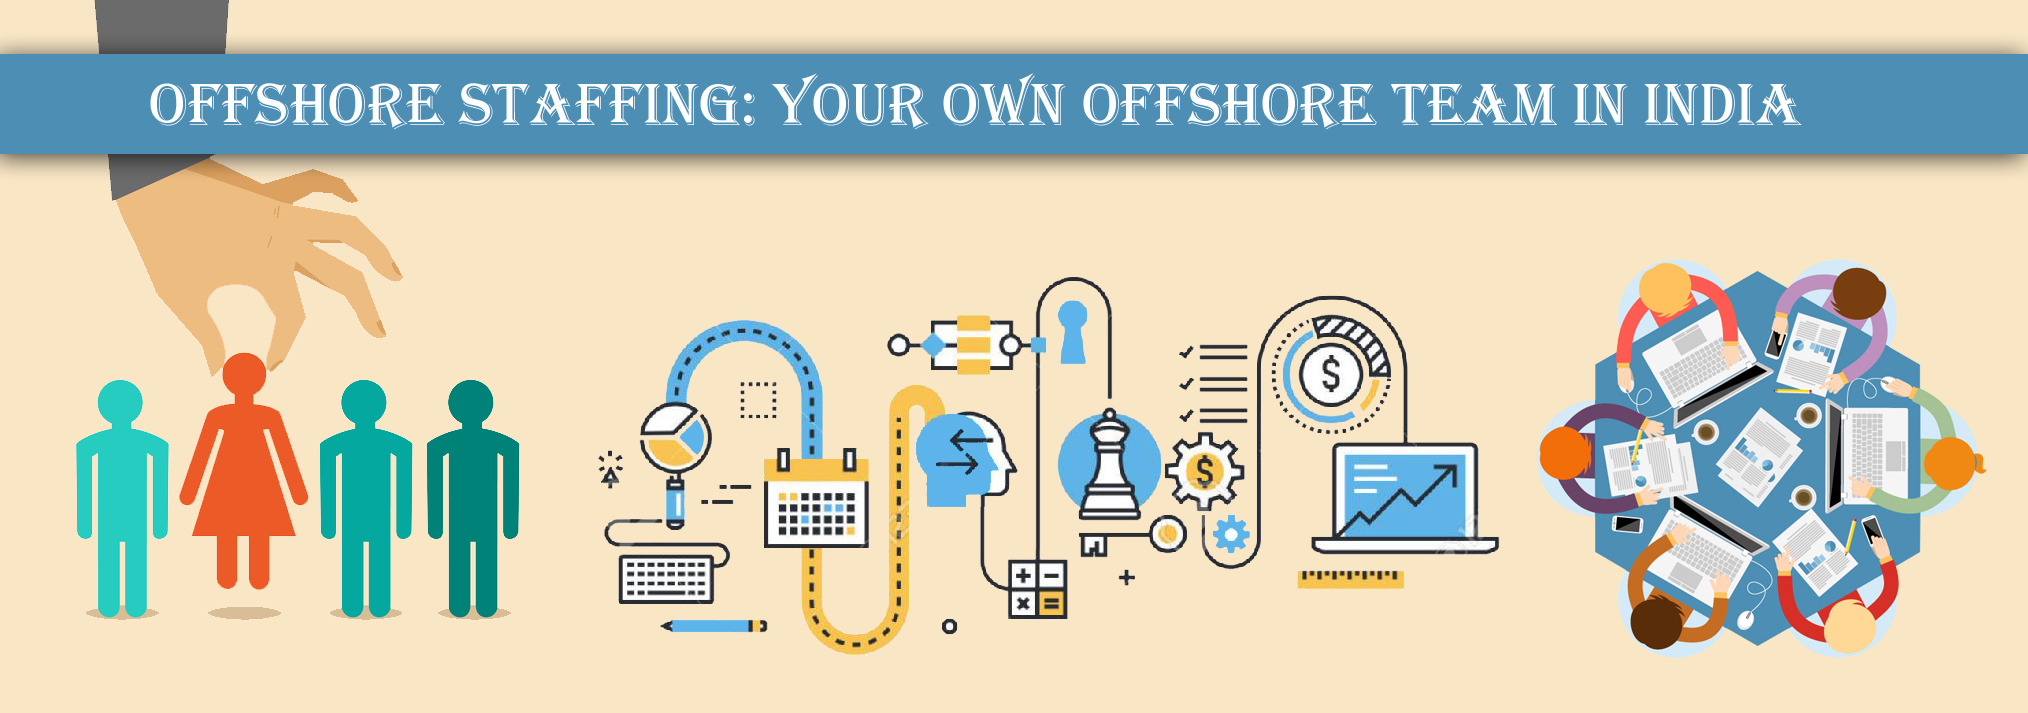 Offshore Staffing Your Own Offshore Team in India